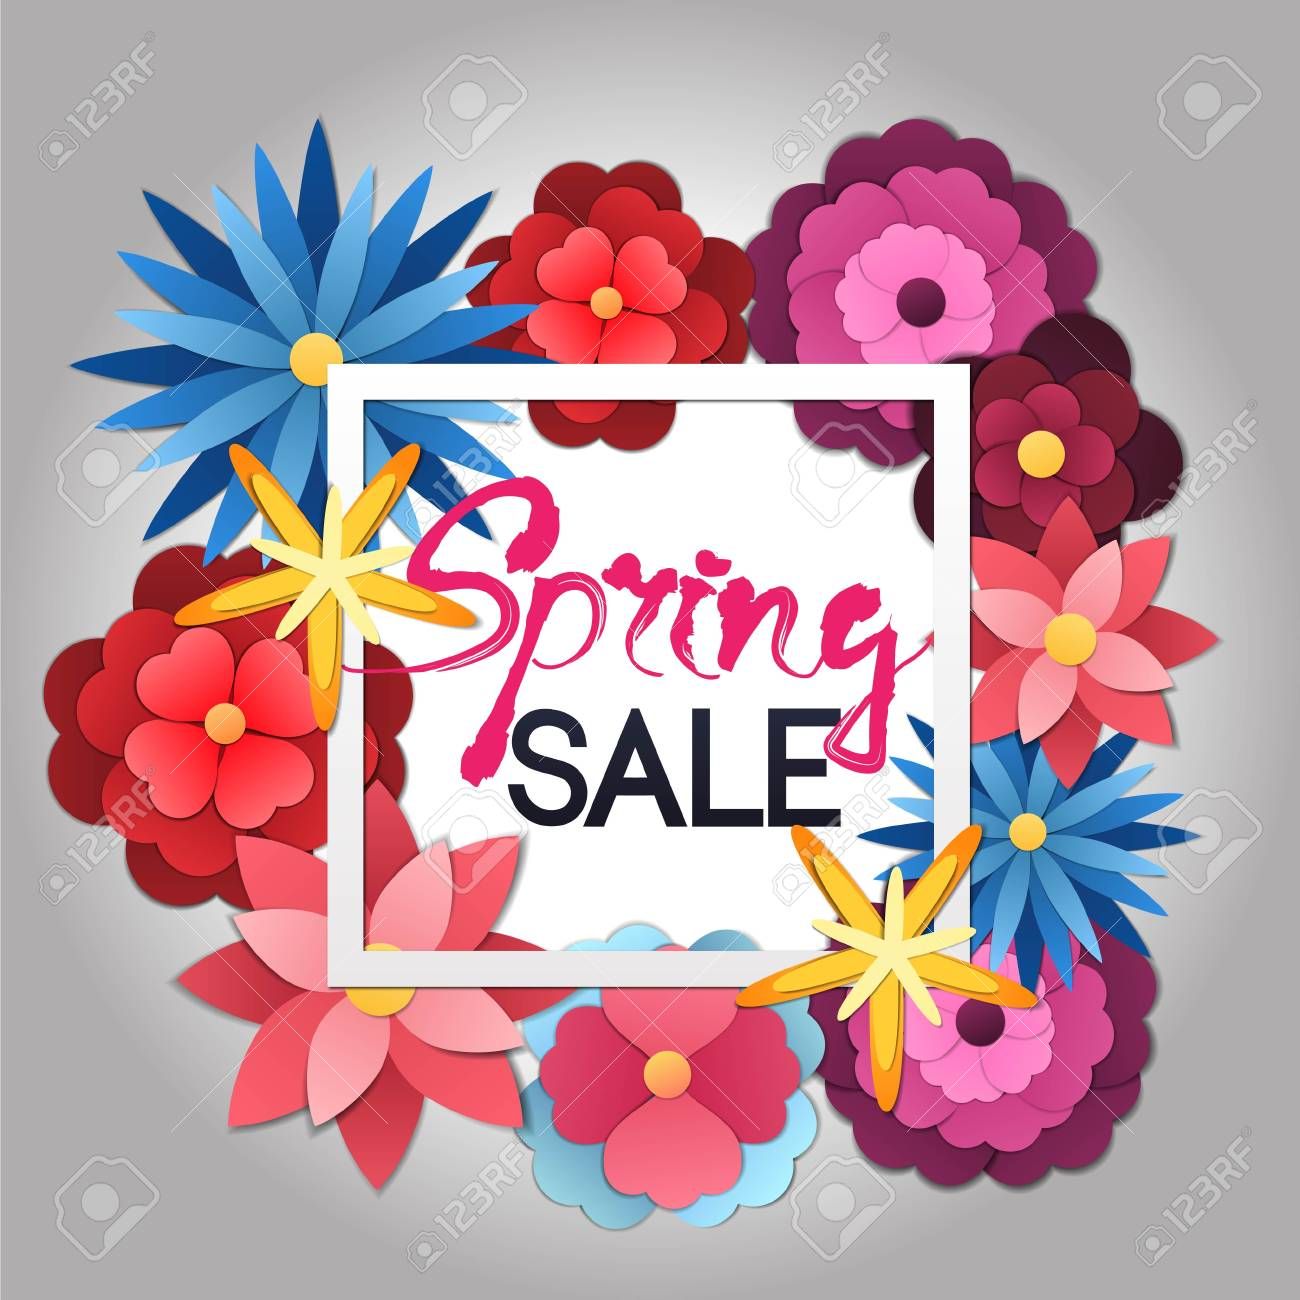 Spring Sale Vector Banner Design With Colorful Flowers In Paper